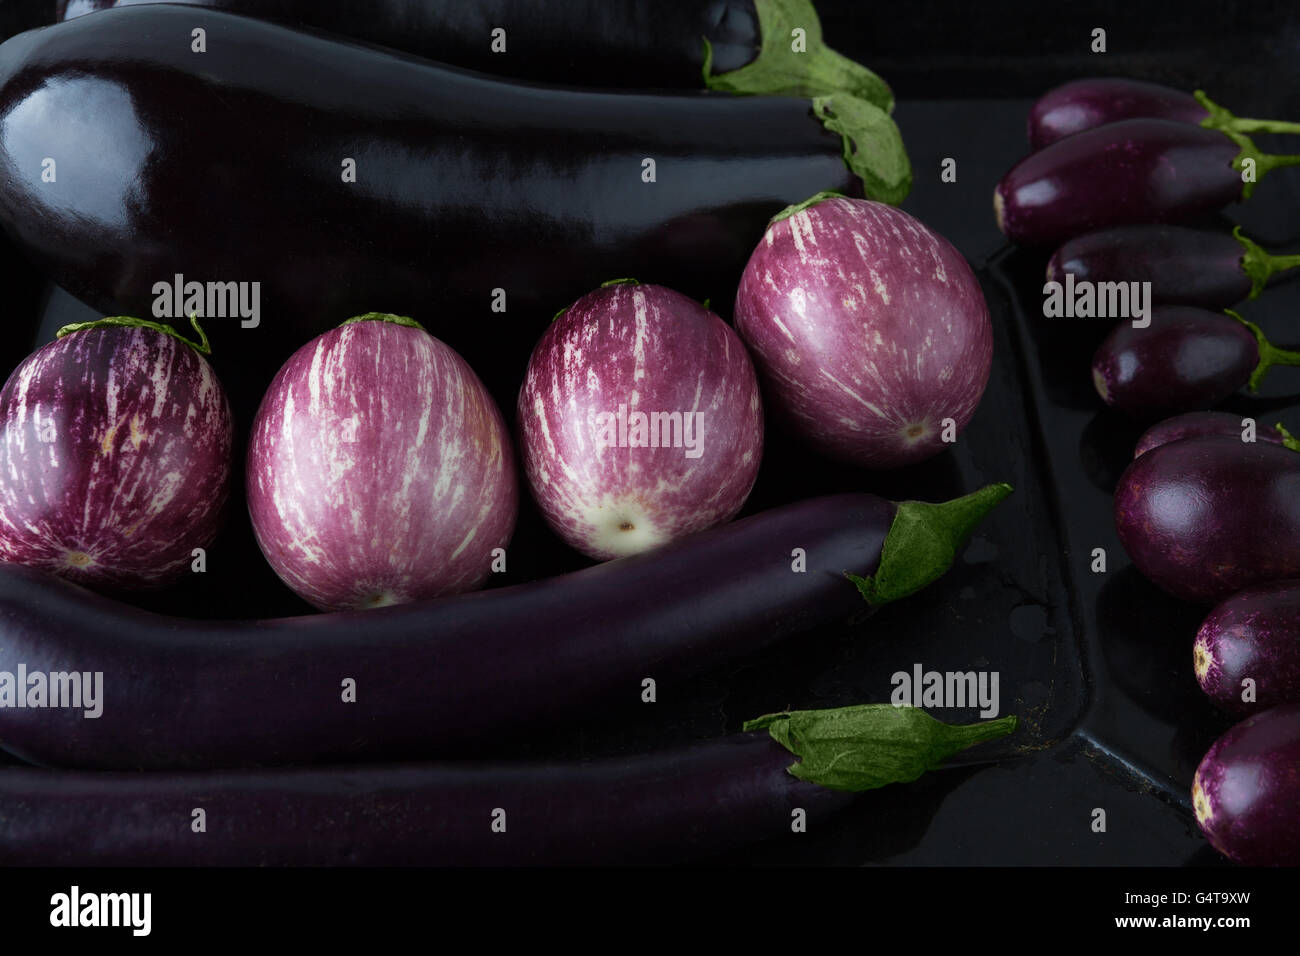 Eggplant varieties arranged on baking tray closeup - Stock Image